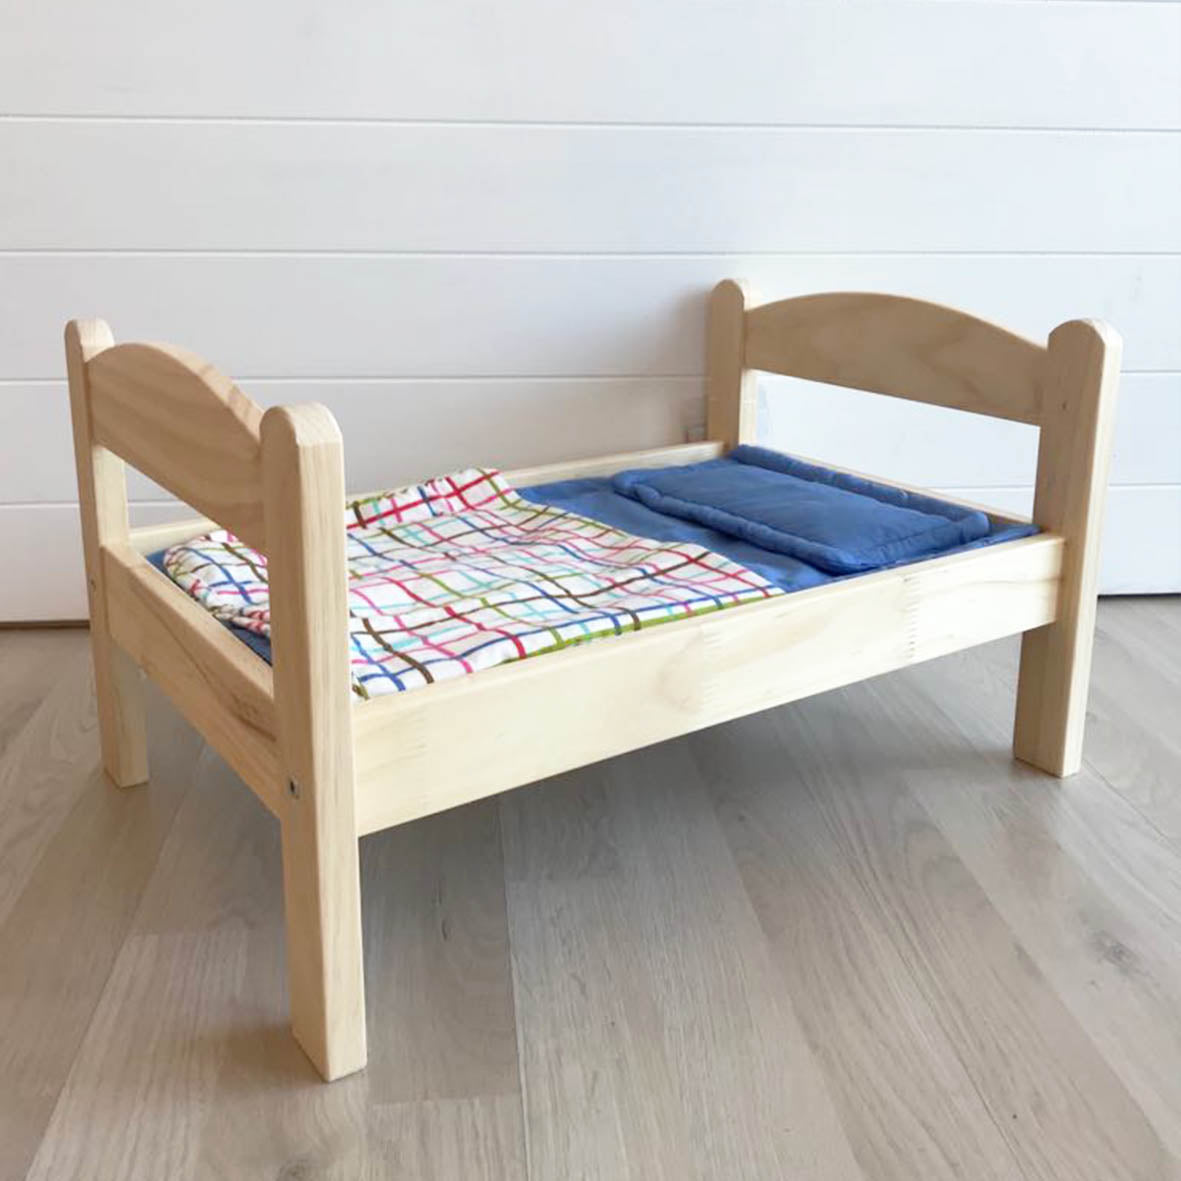 IKEA Duktig Kids Doll Bed